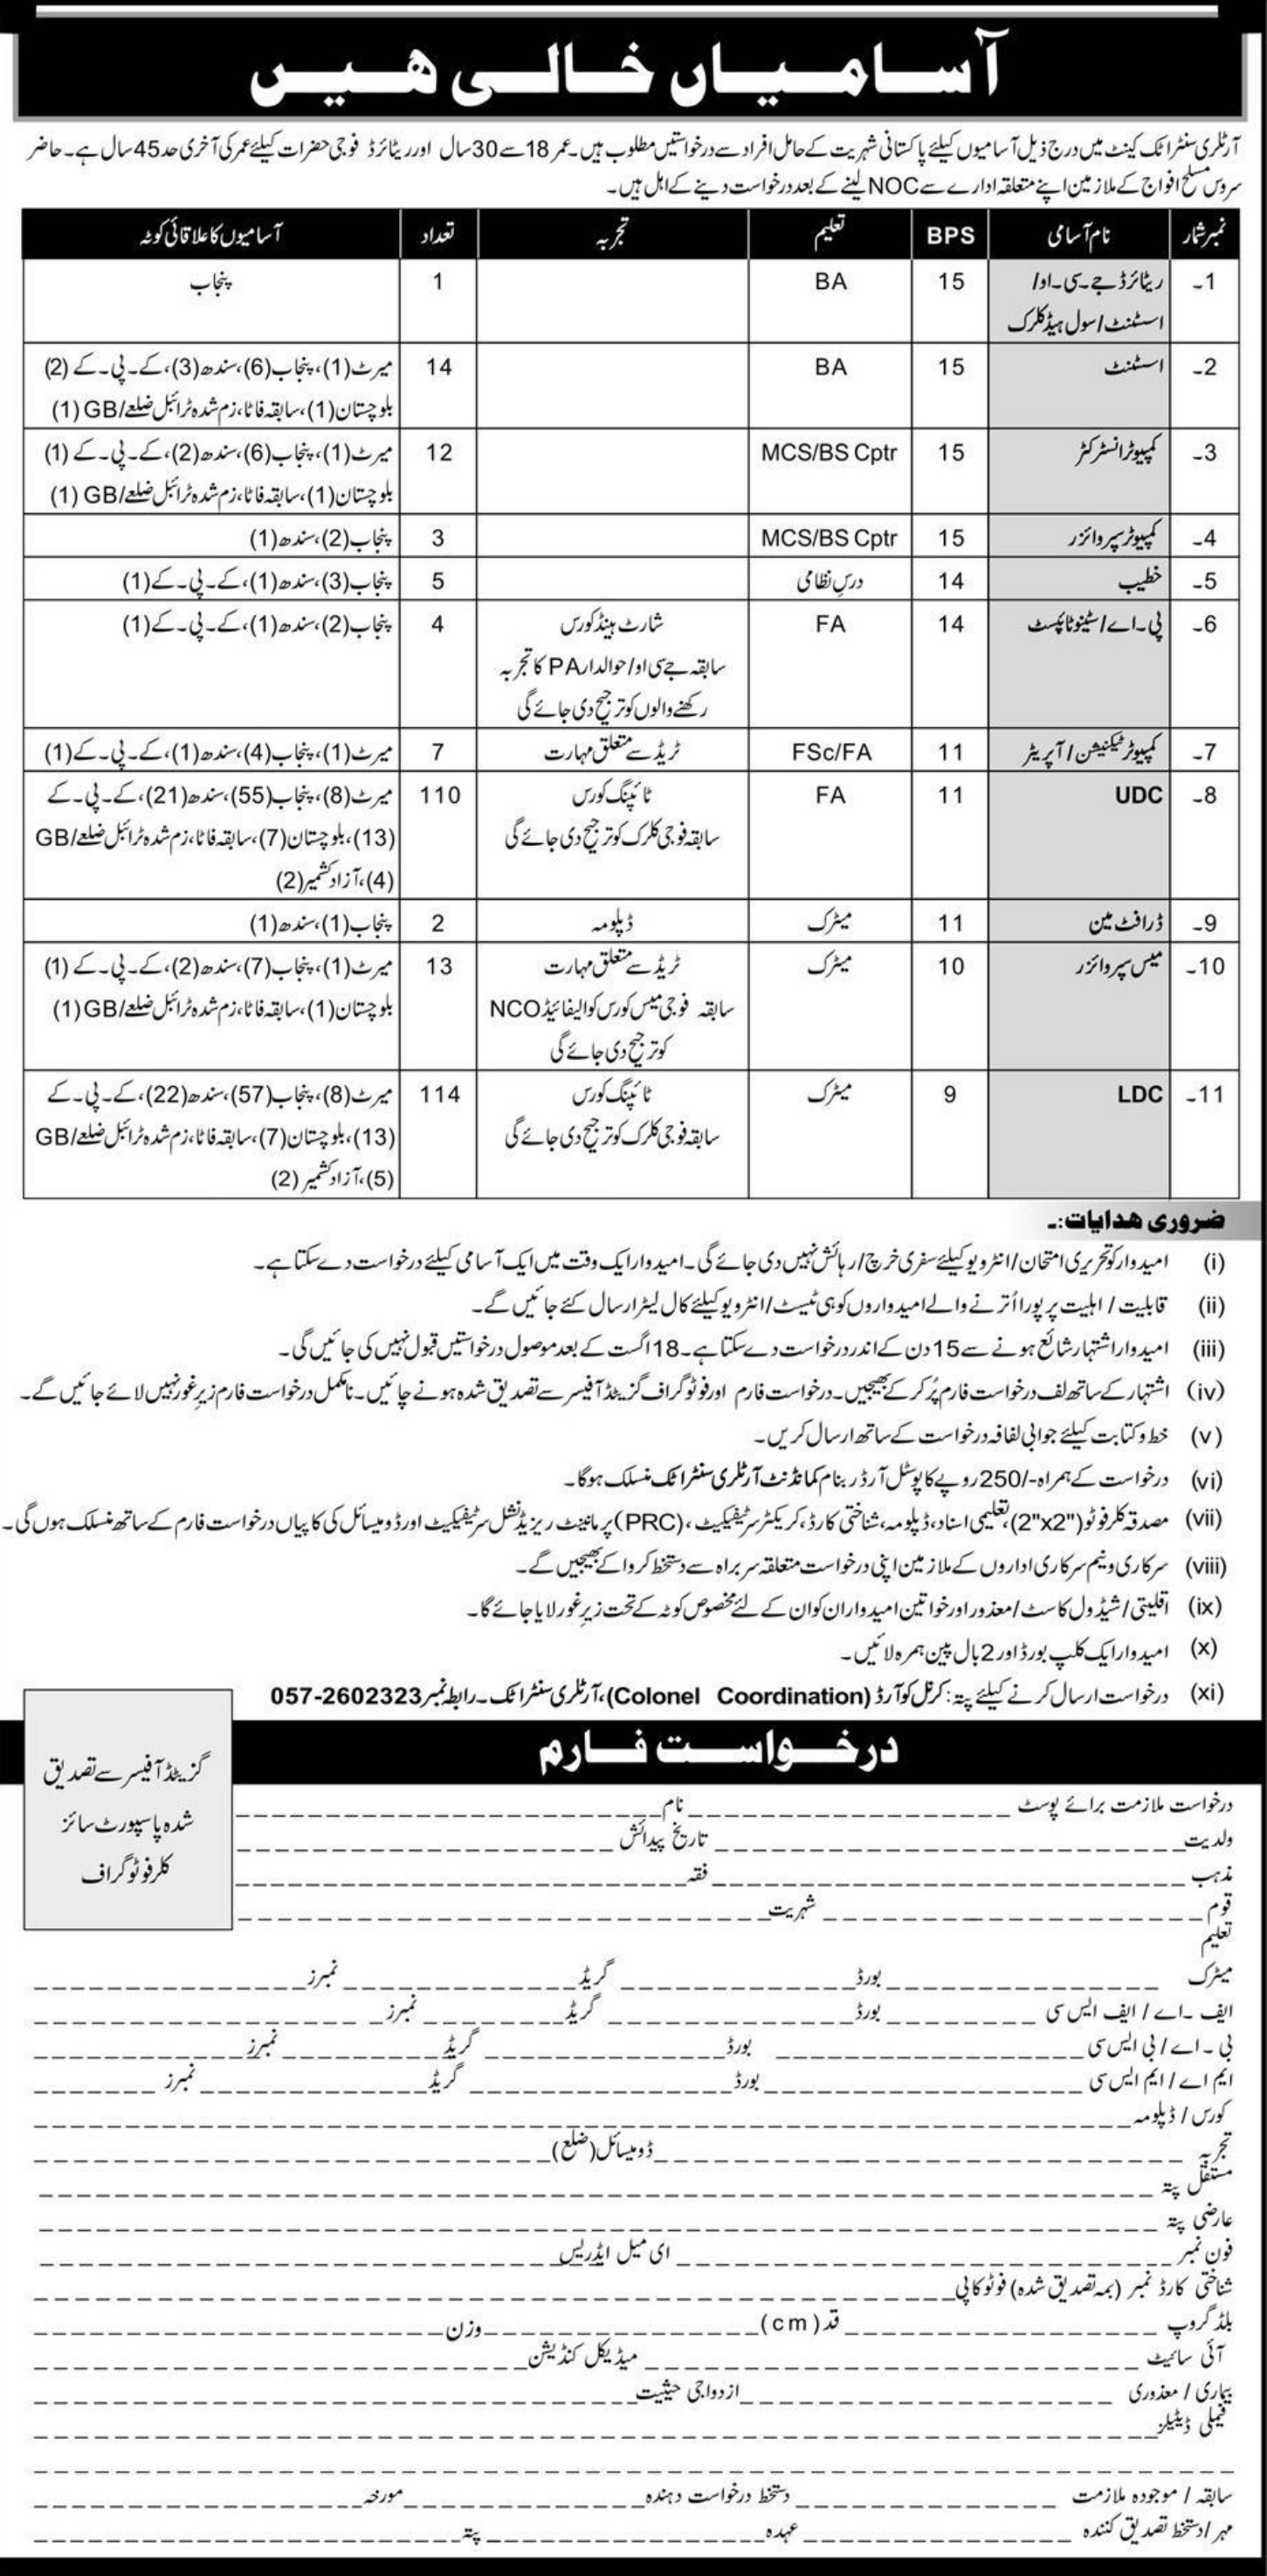 Artillary Center Attock Cantt Jobs 2019 Pak Army